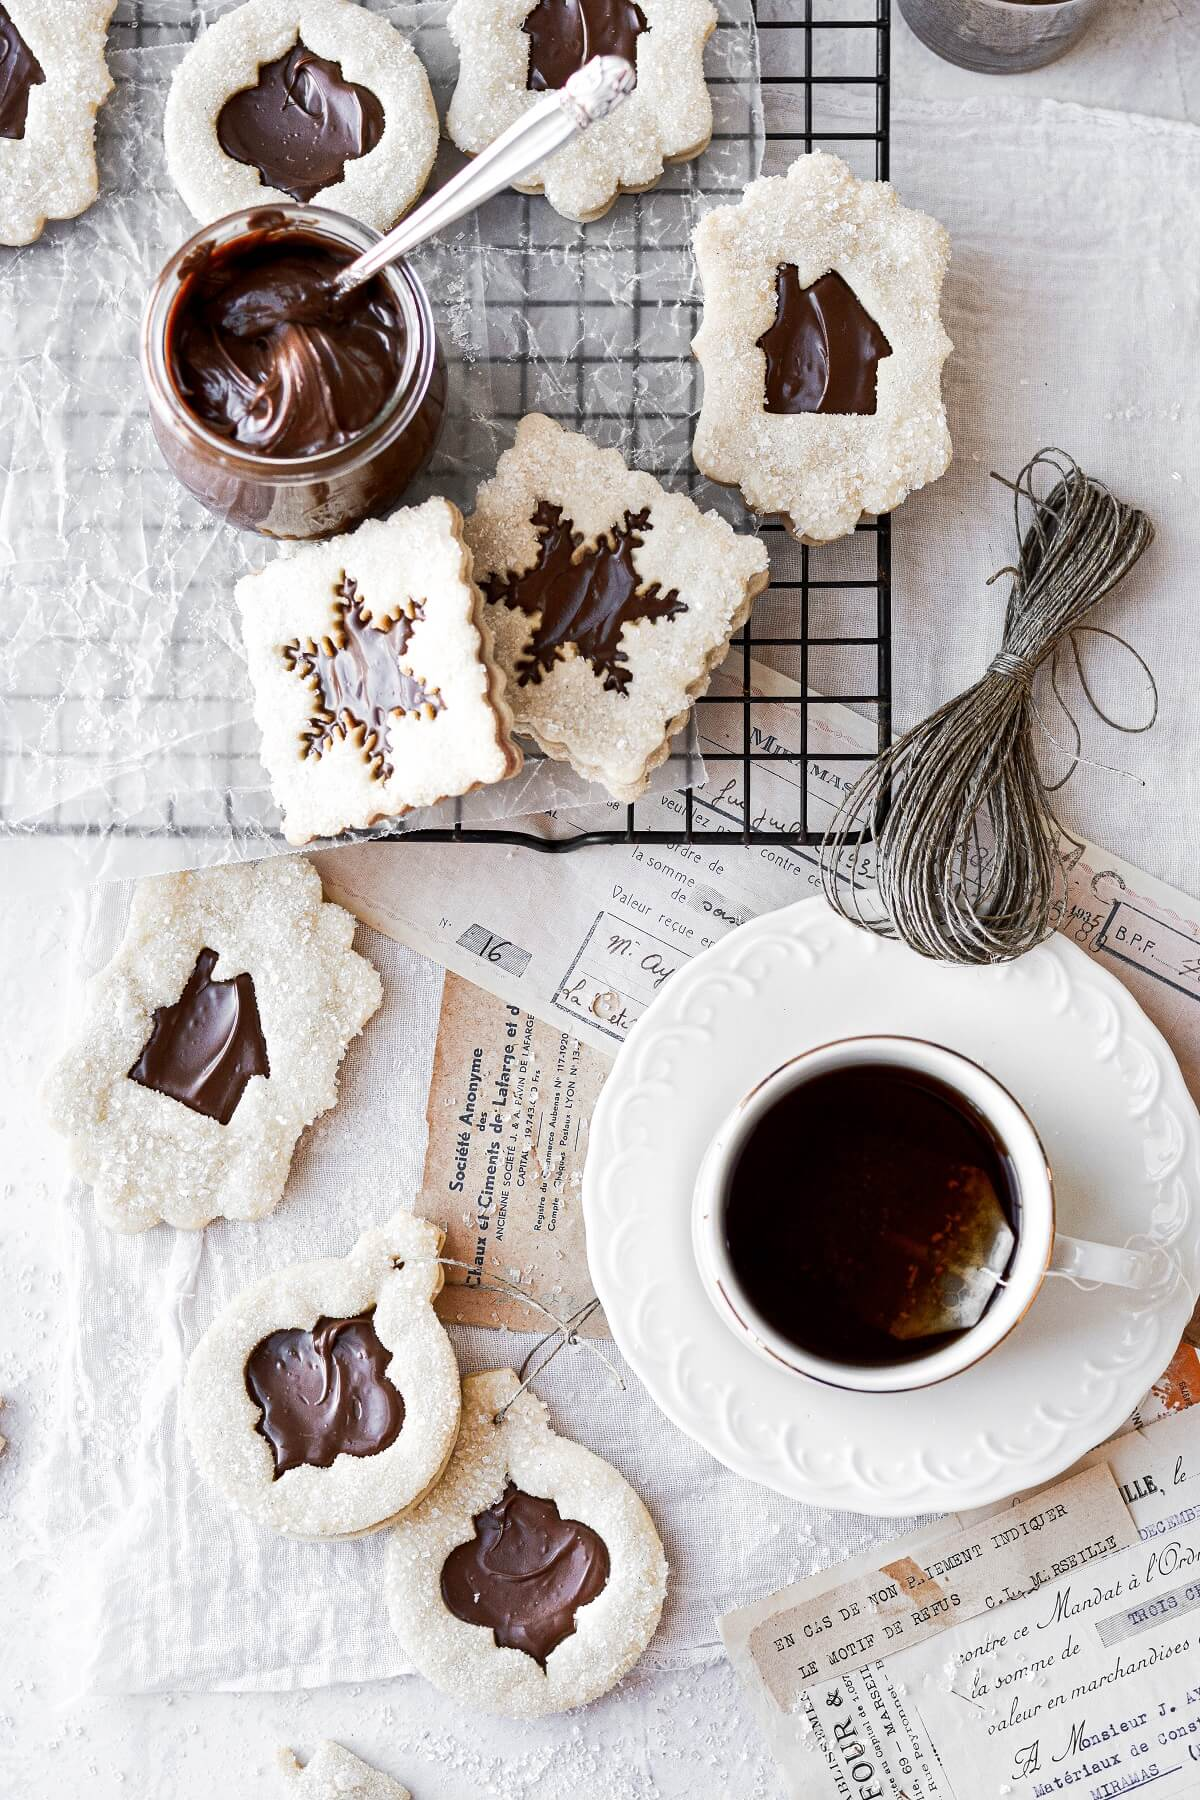 Chocolate hazelnut linzer cookies, scattered around a cup of hot tea.